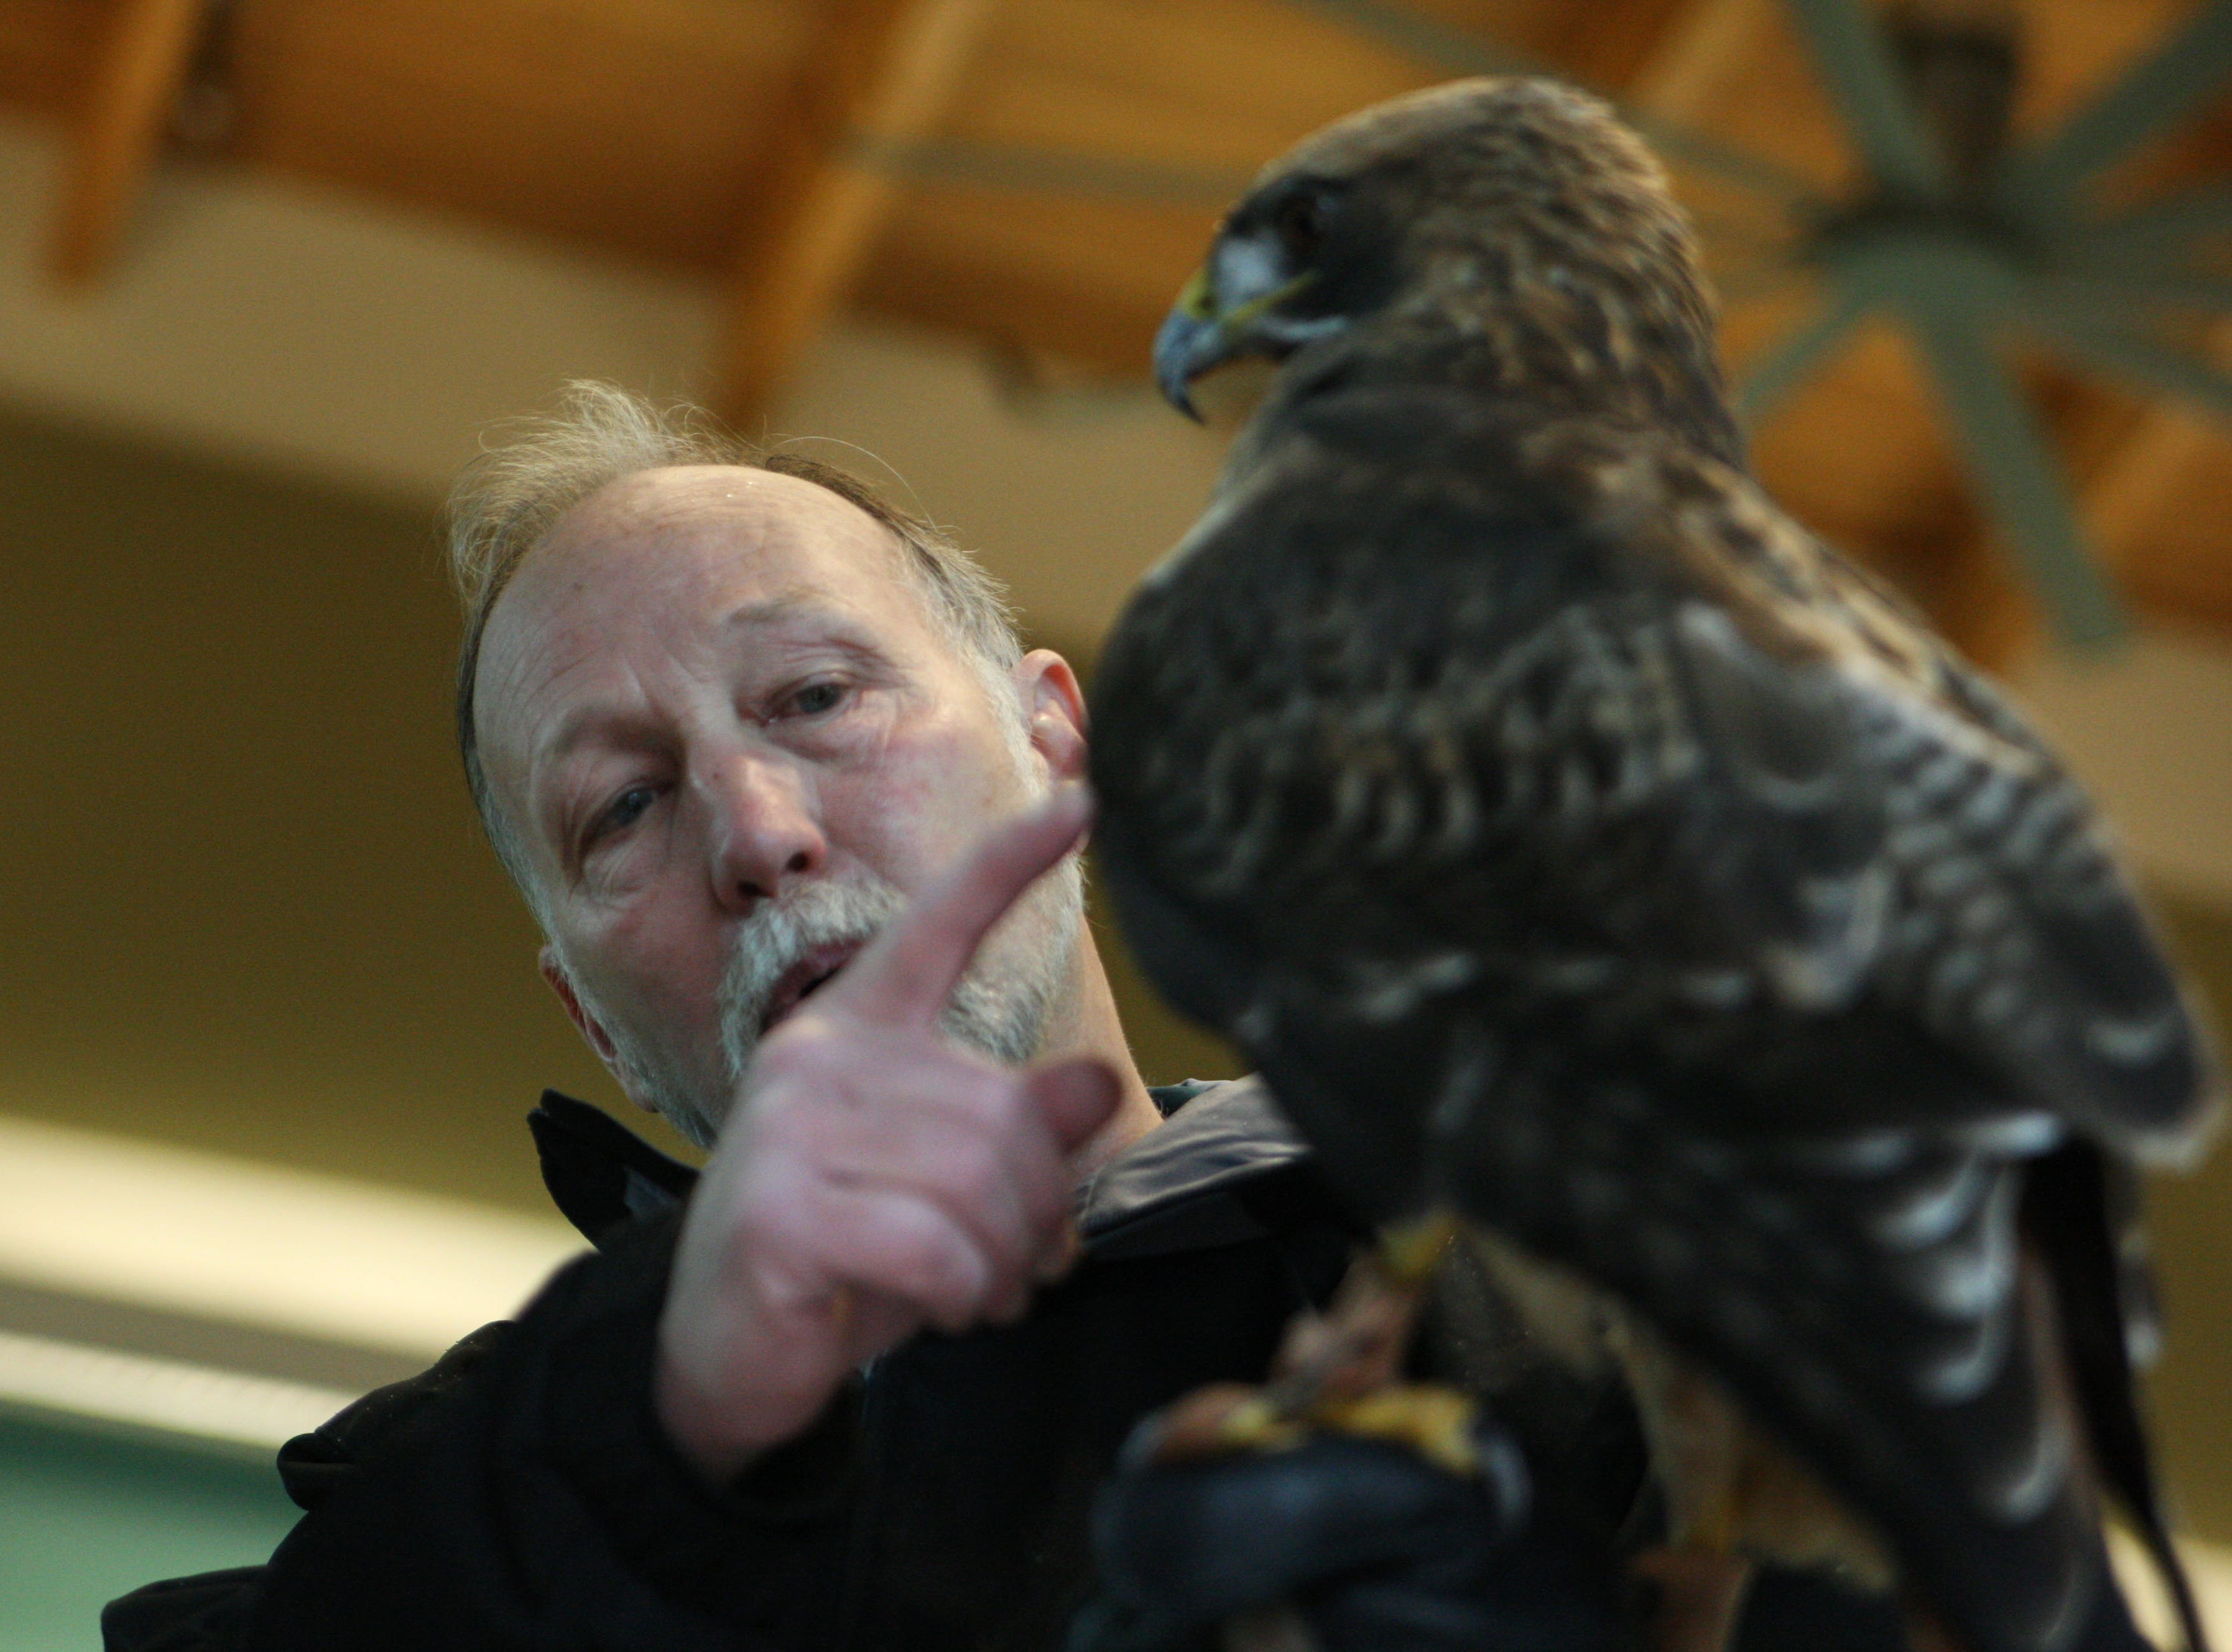 D.D.'s handler points out her wing, explaining that hawks have about 7,000 feathers on their body.